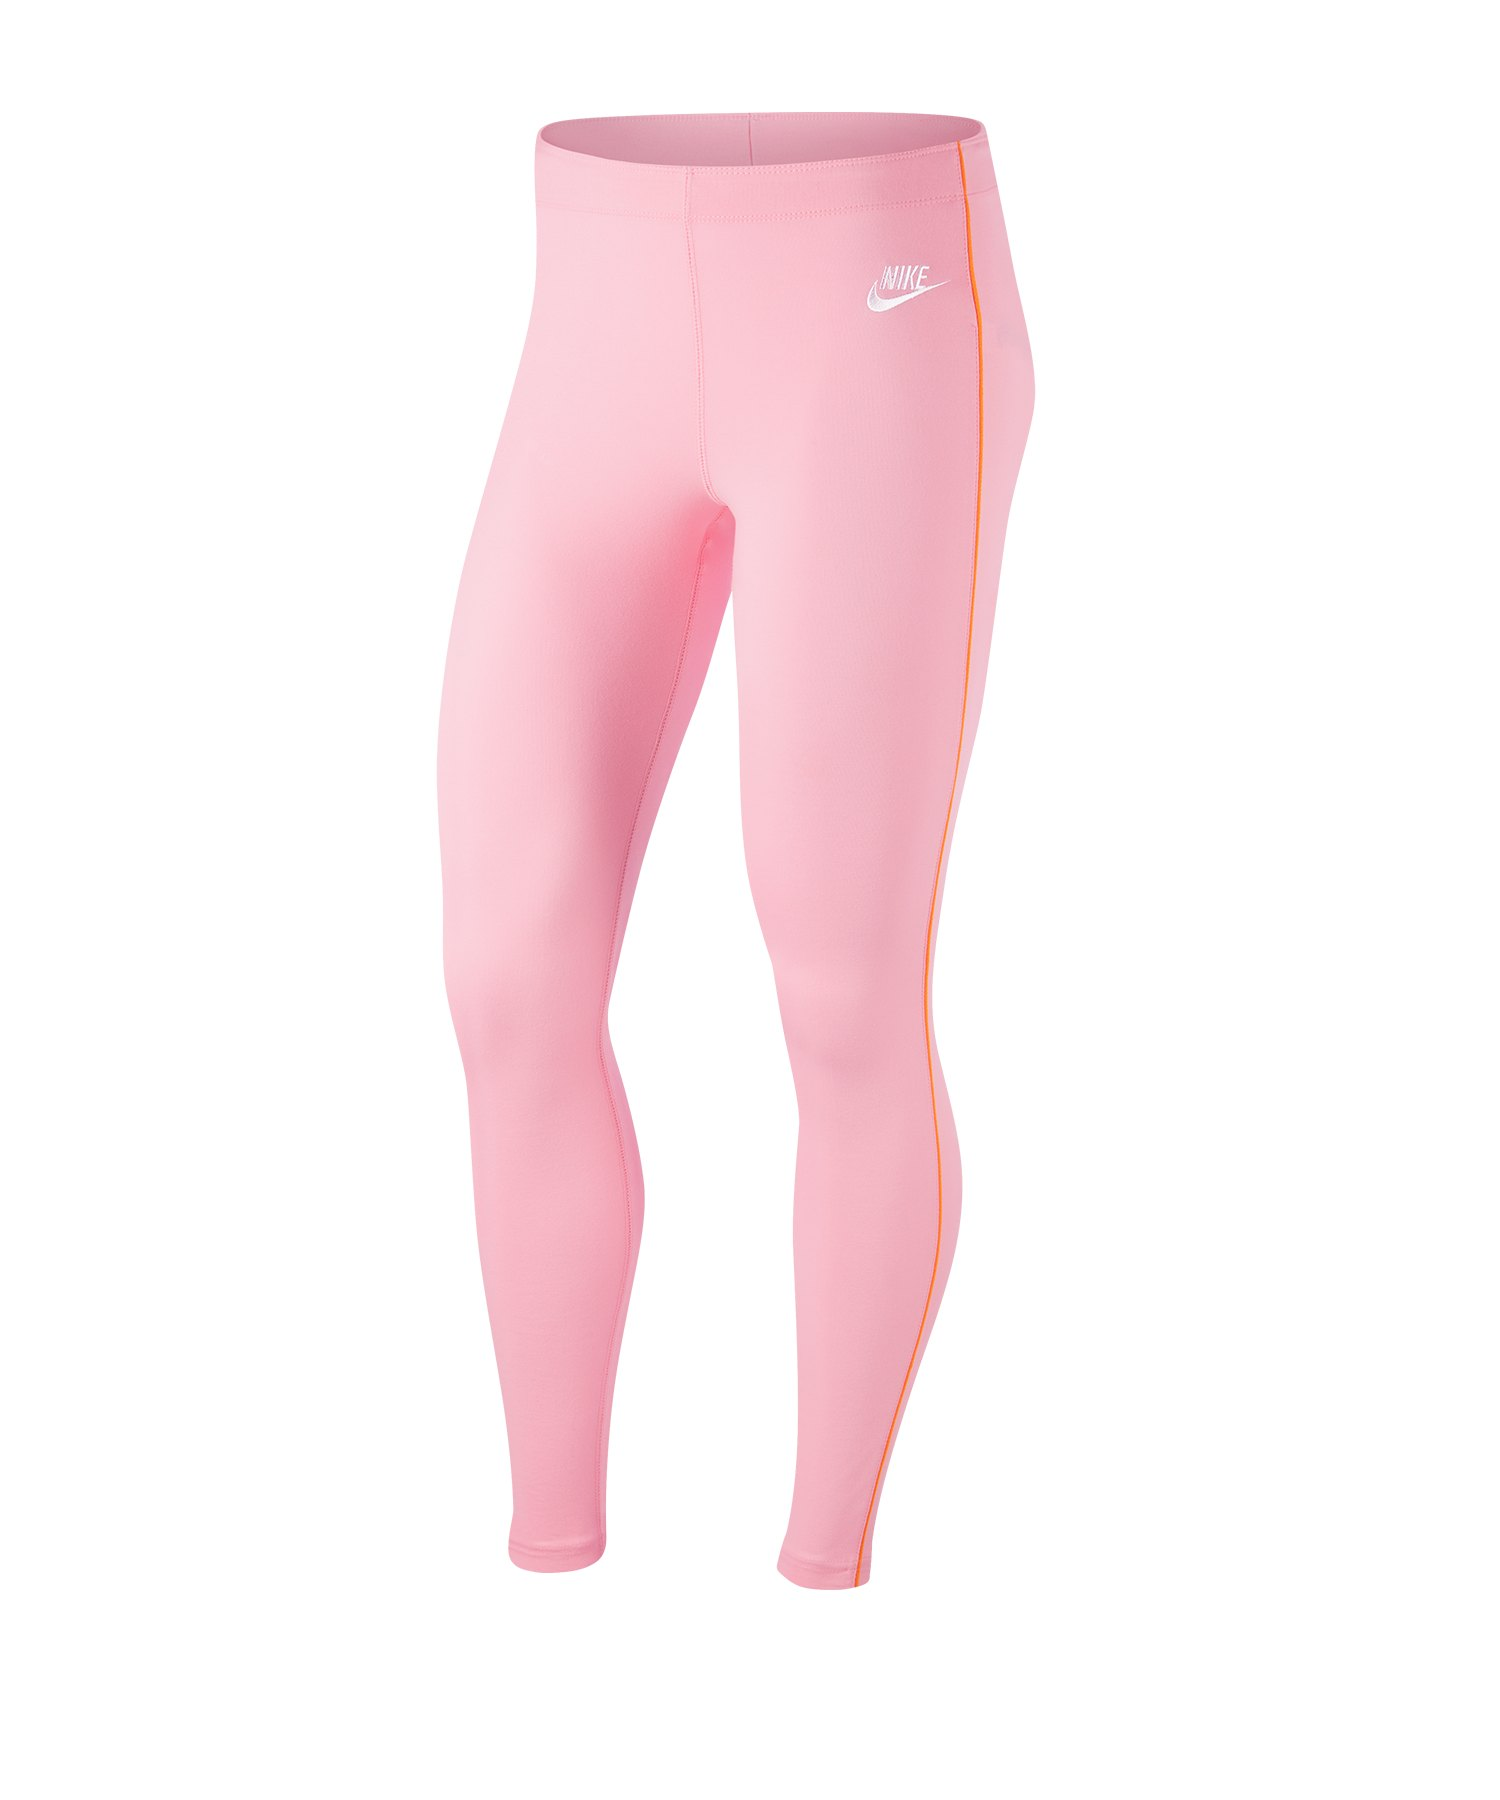 Nike Heritage Leggings Damen Pink Orange F690 - pink